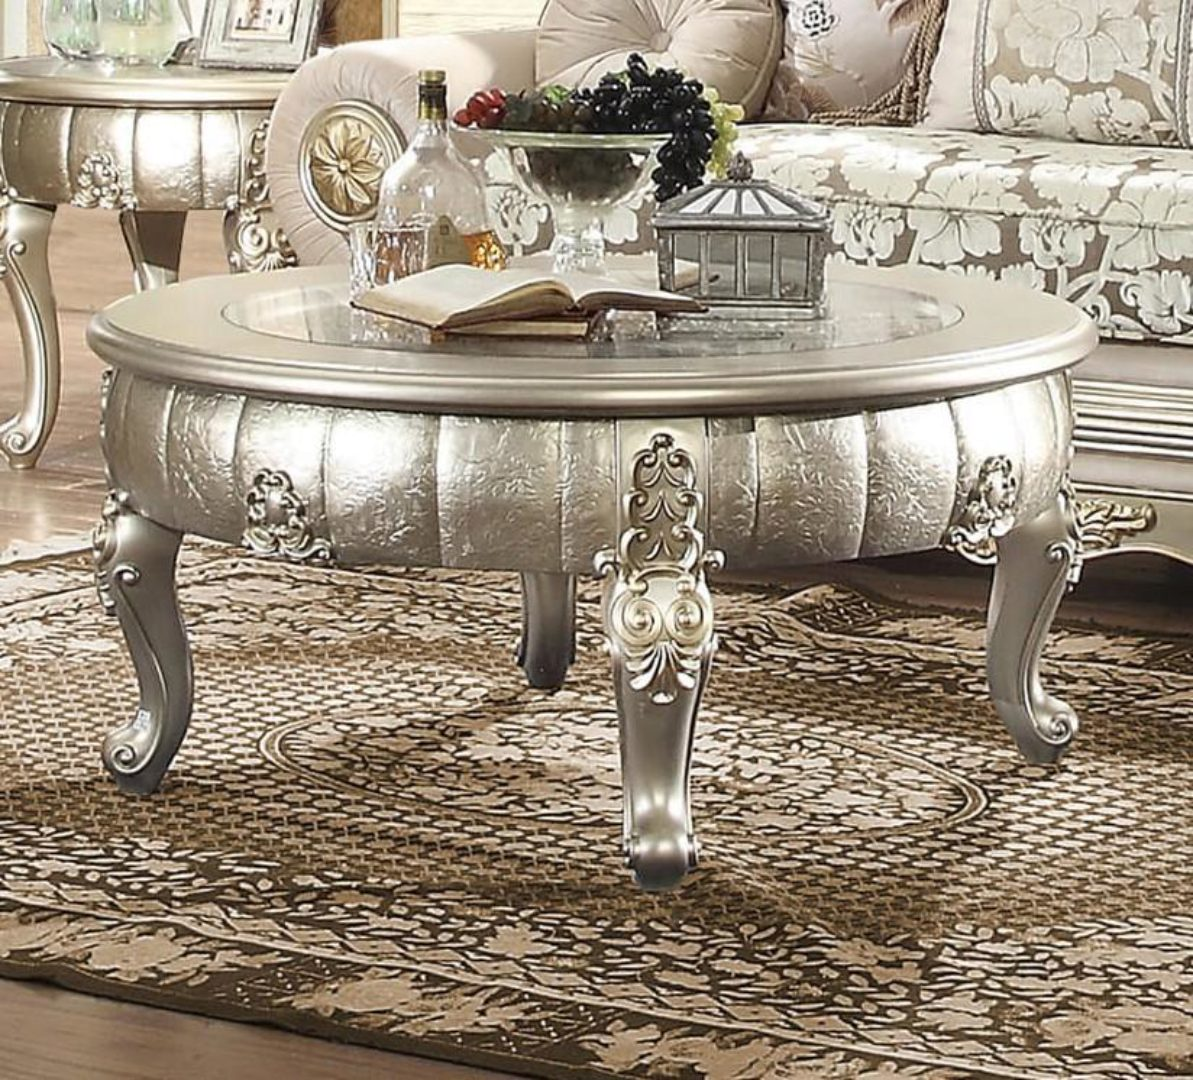 belle silver coffee table carved wood homey design hd 1560 traditional classic